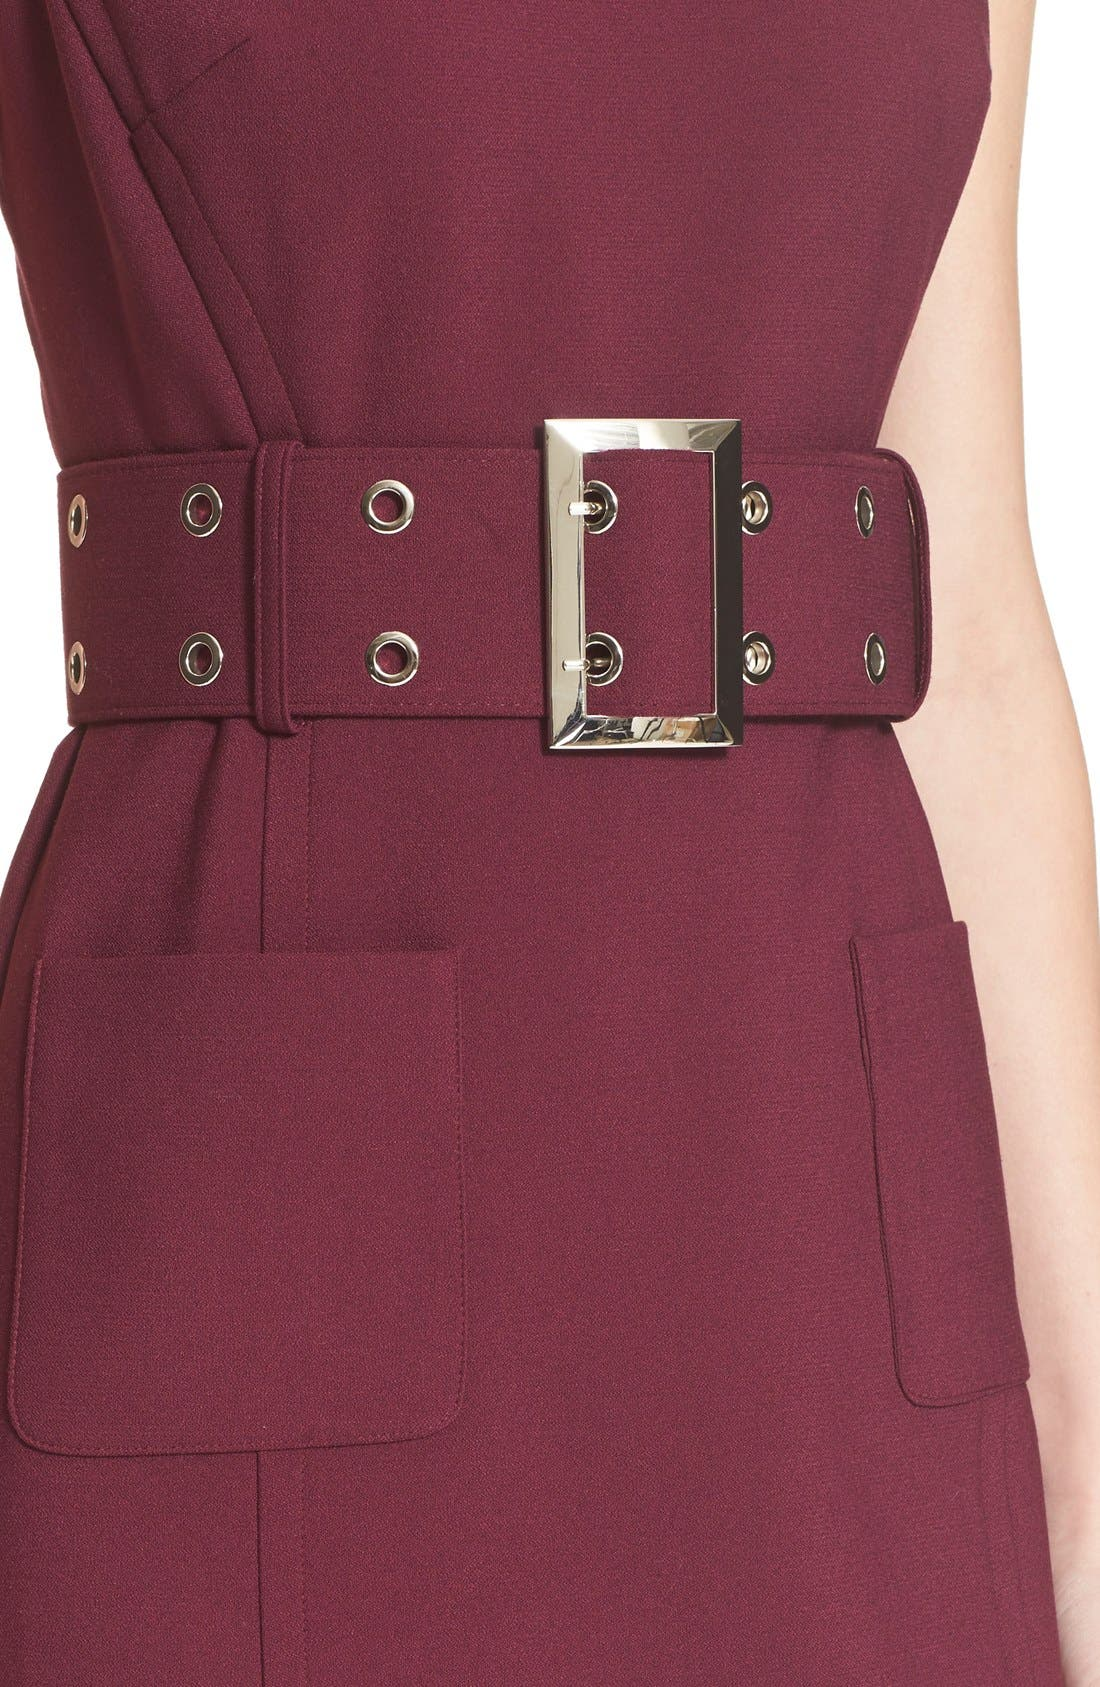 Double Crepe Belted Minidress,                             Alternate thumbnail 4, color,                             607